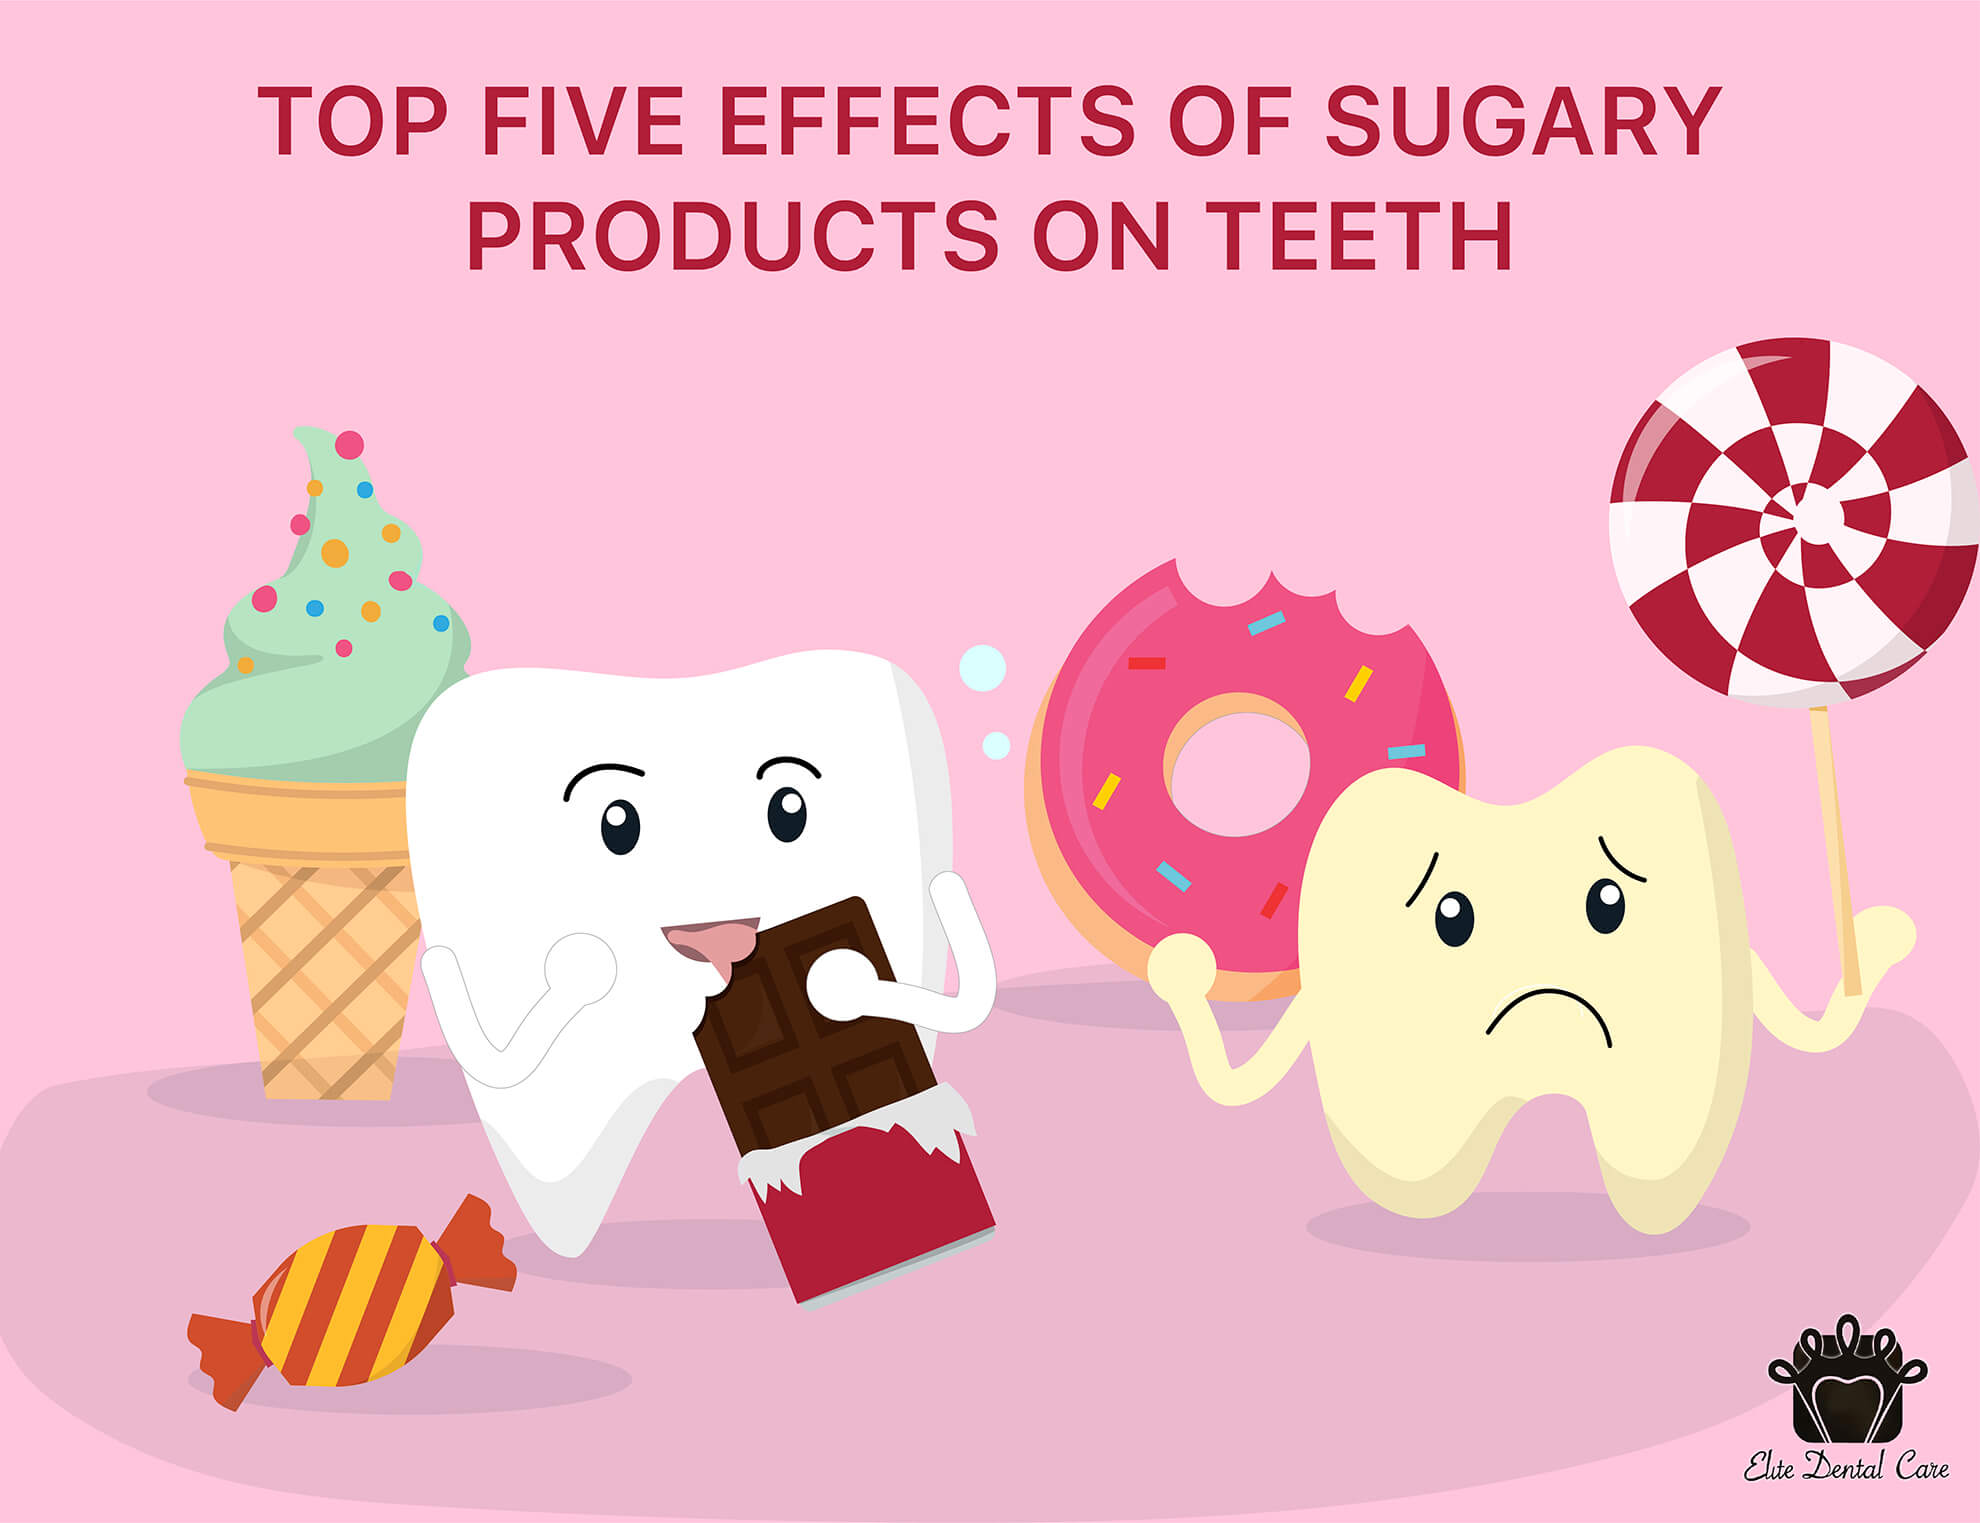 Effects of Sugary Products on Teeth